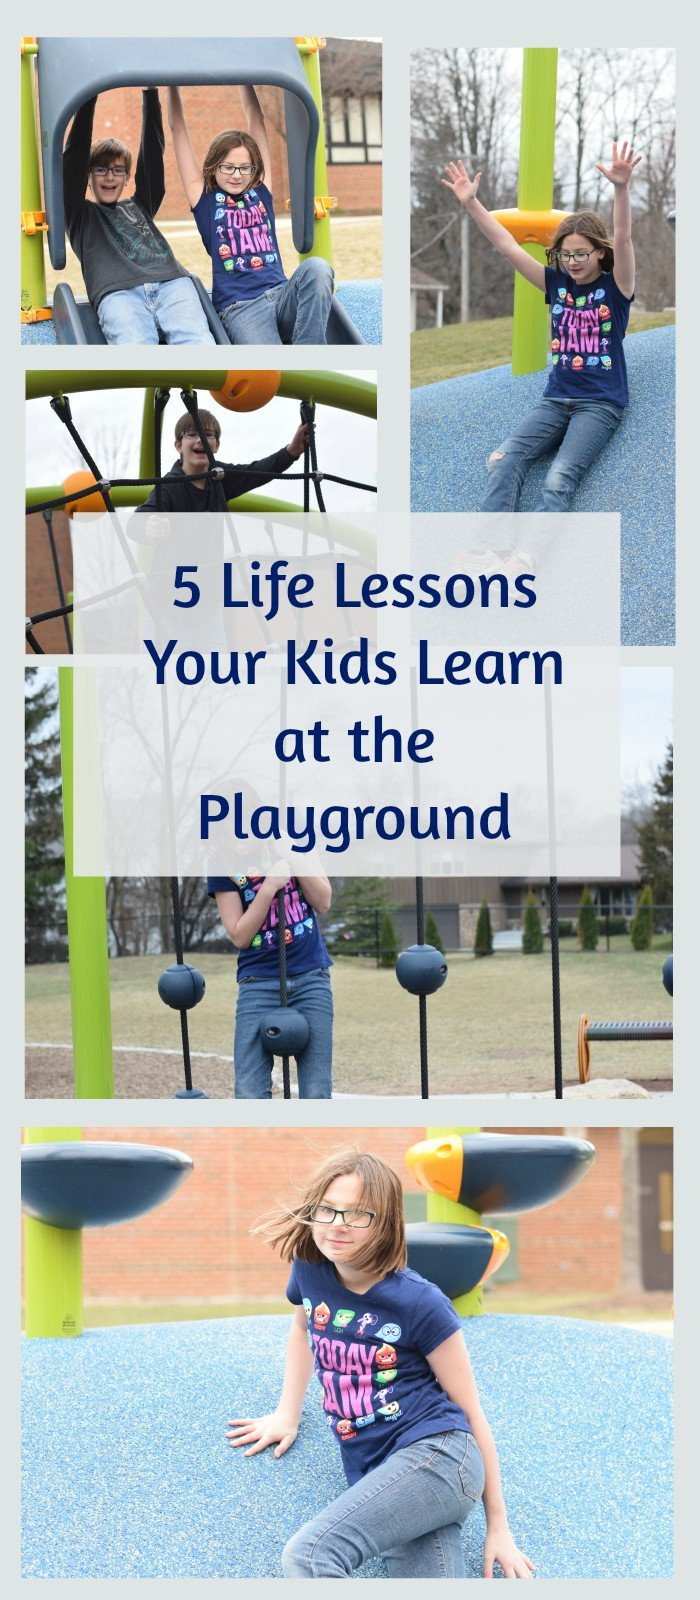 5 Life Lessons kids learn. Playground benefits kids both physically and mentally. This is a great excuse to go visit a park near you today!